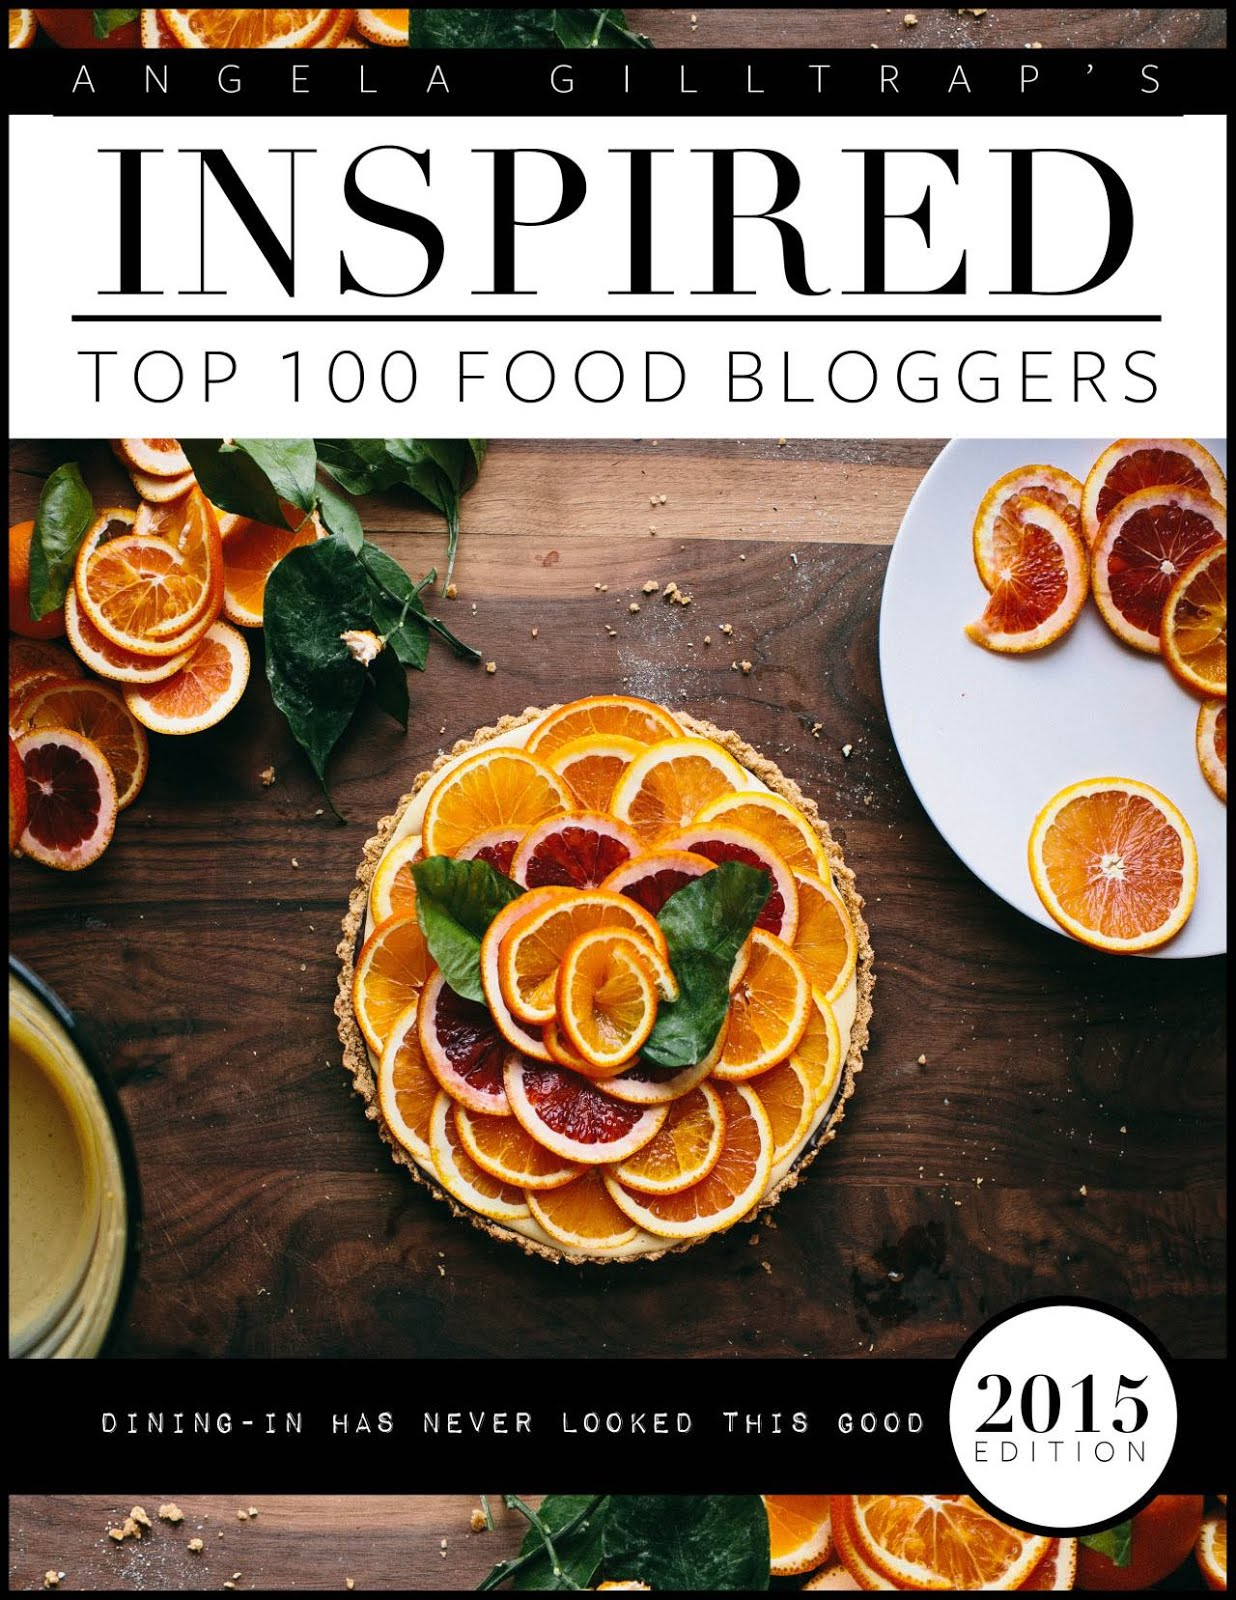 TOP 100 Food Bloggers